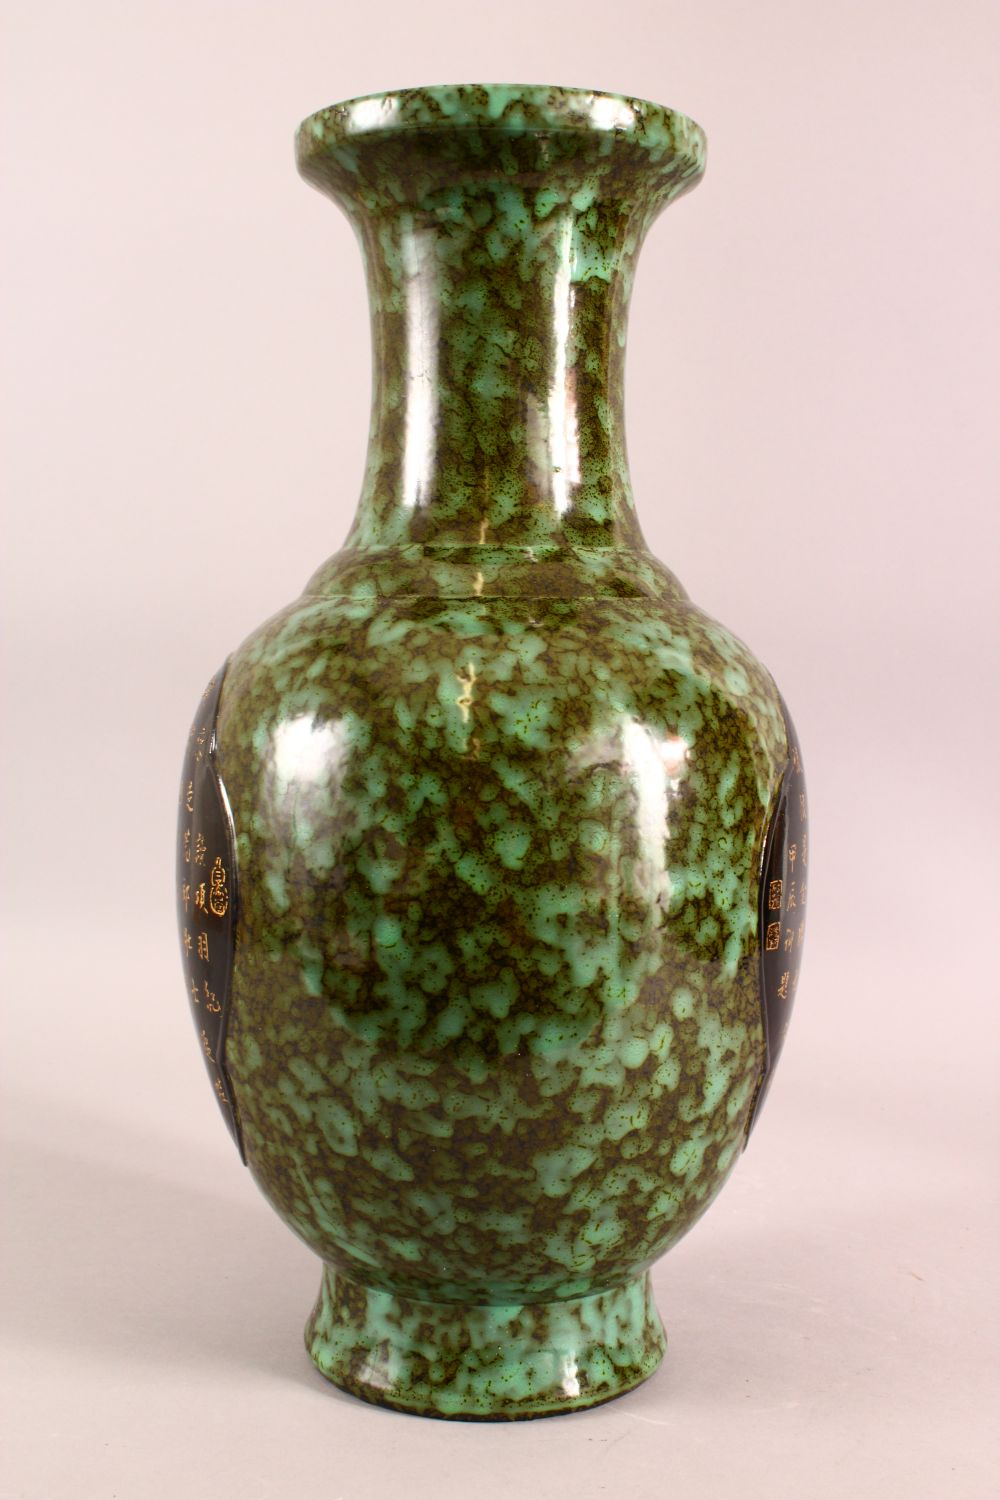 A CHINESE UNUSUAL GREEN GROUND VASE, the body with panels of calligraphic script, the base with four - Image 6 of 8